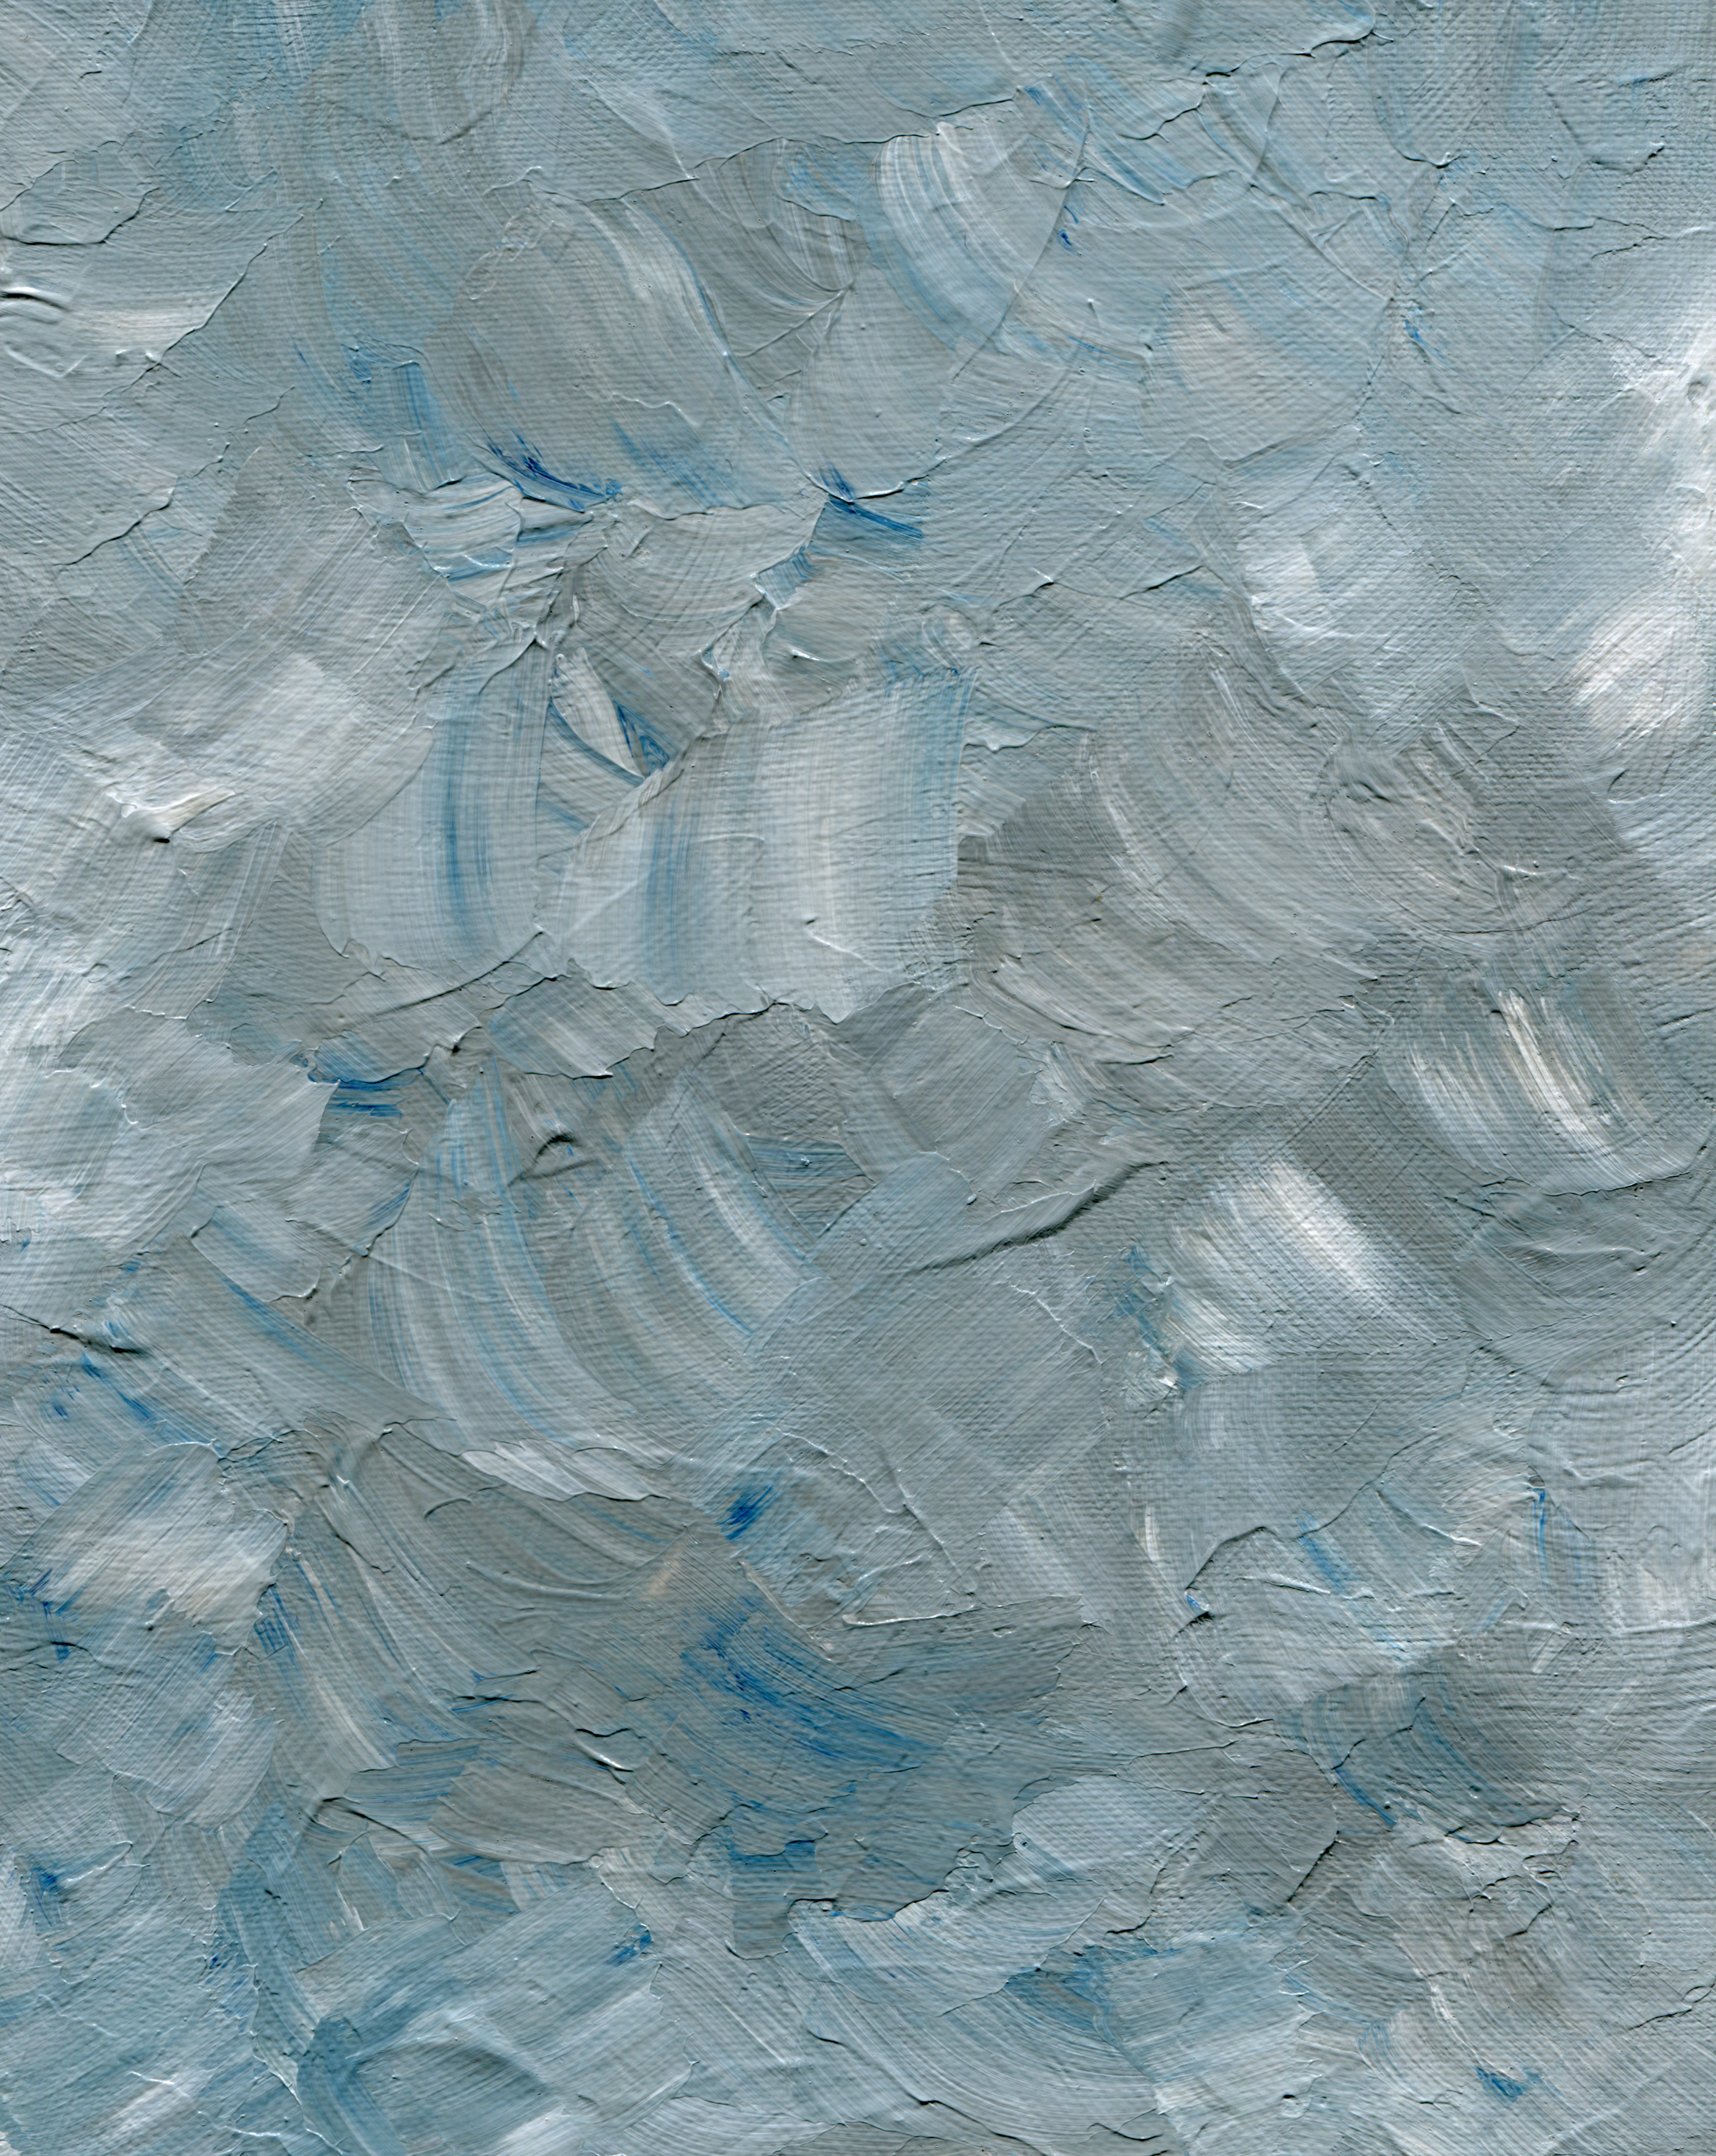 Simulate Painting Textures in Photoshop | Shellie Lewis' Blog